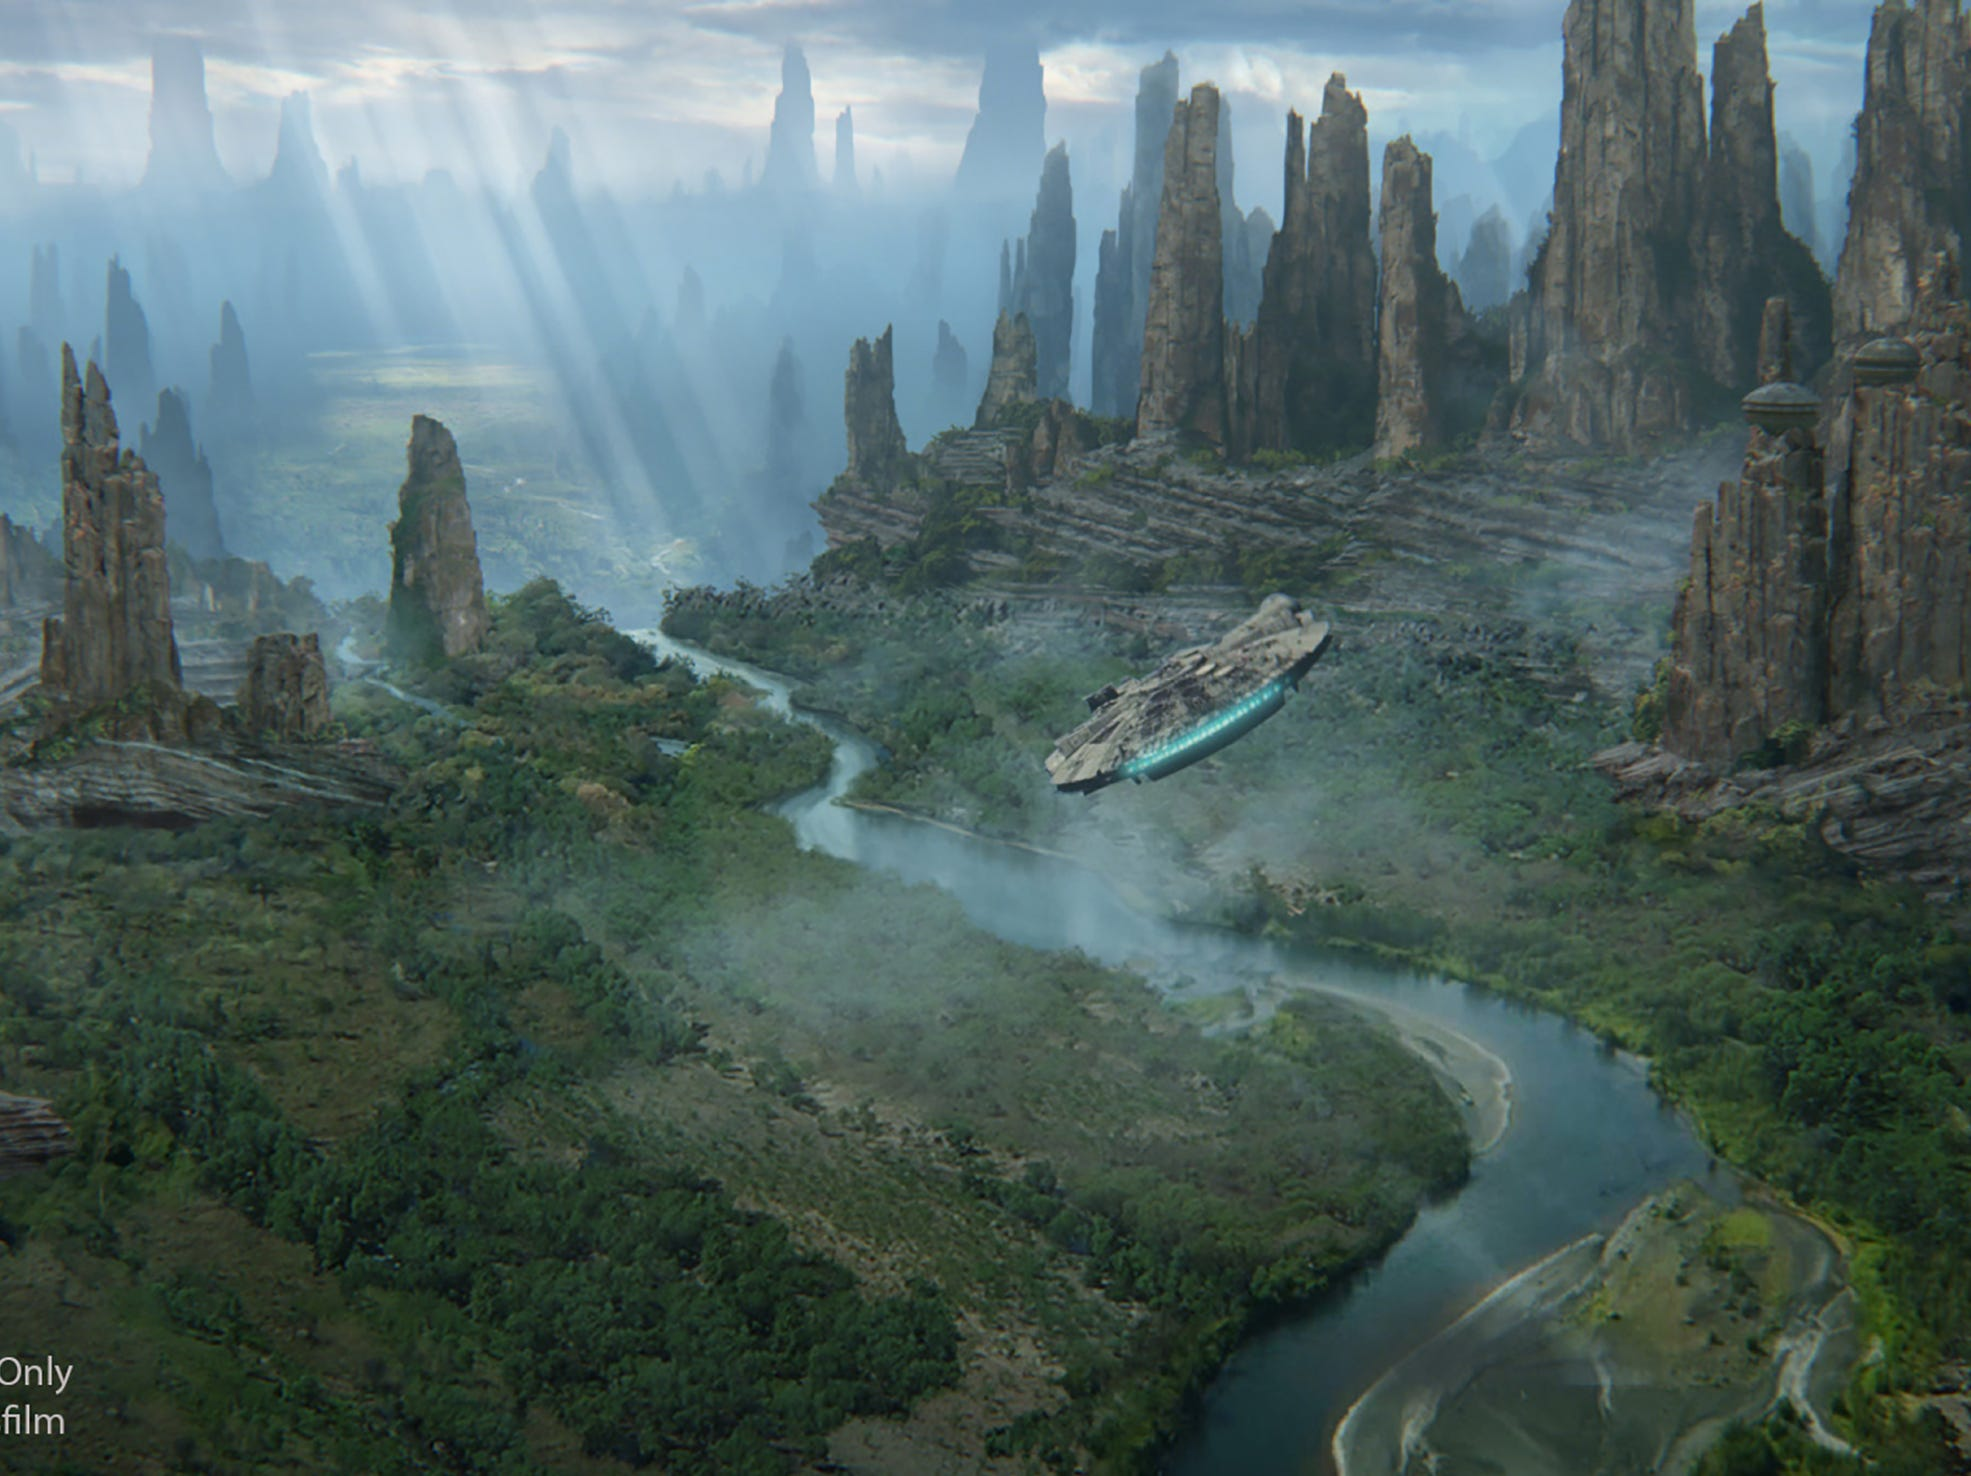 Guests may pilot Han Solo's famous ship in Millennium Falcon: Smugglers Run when Star Wars: Galaxy's Edge opens May 31, 2019, at Disneyland.